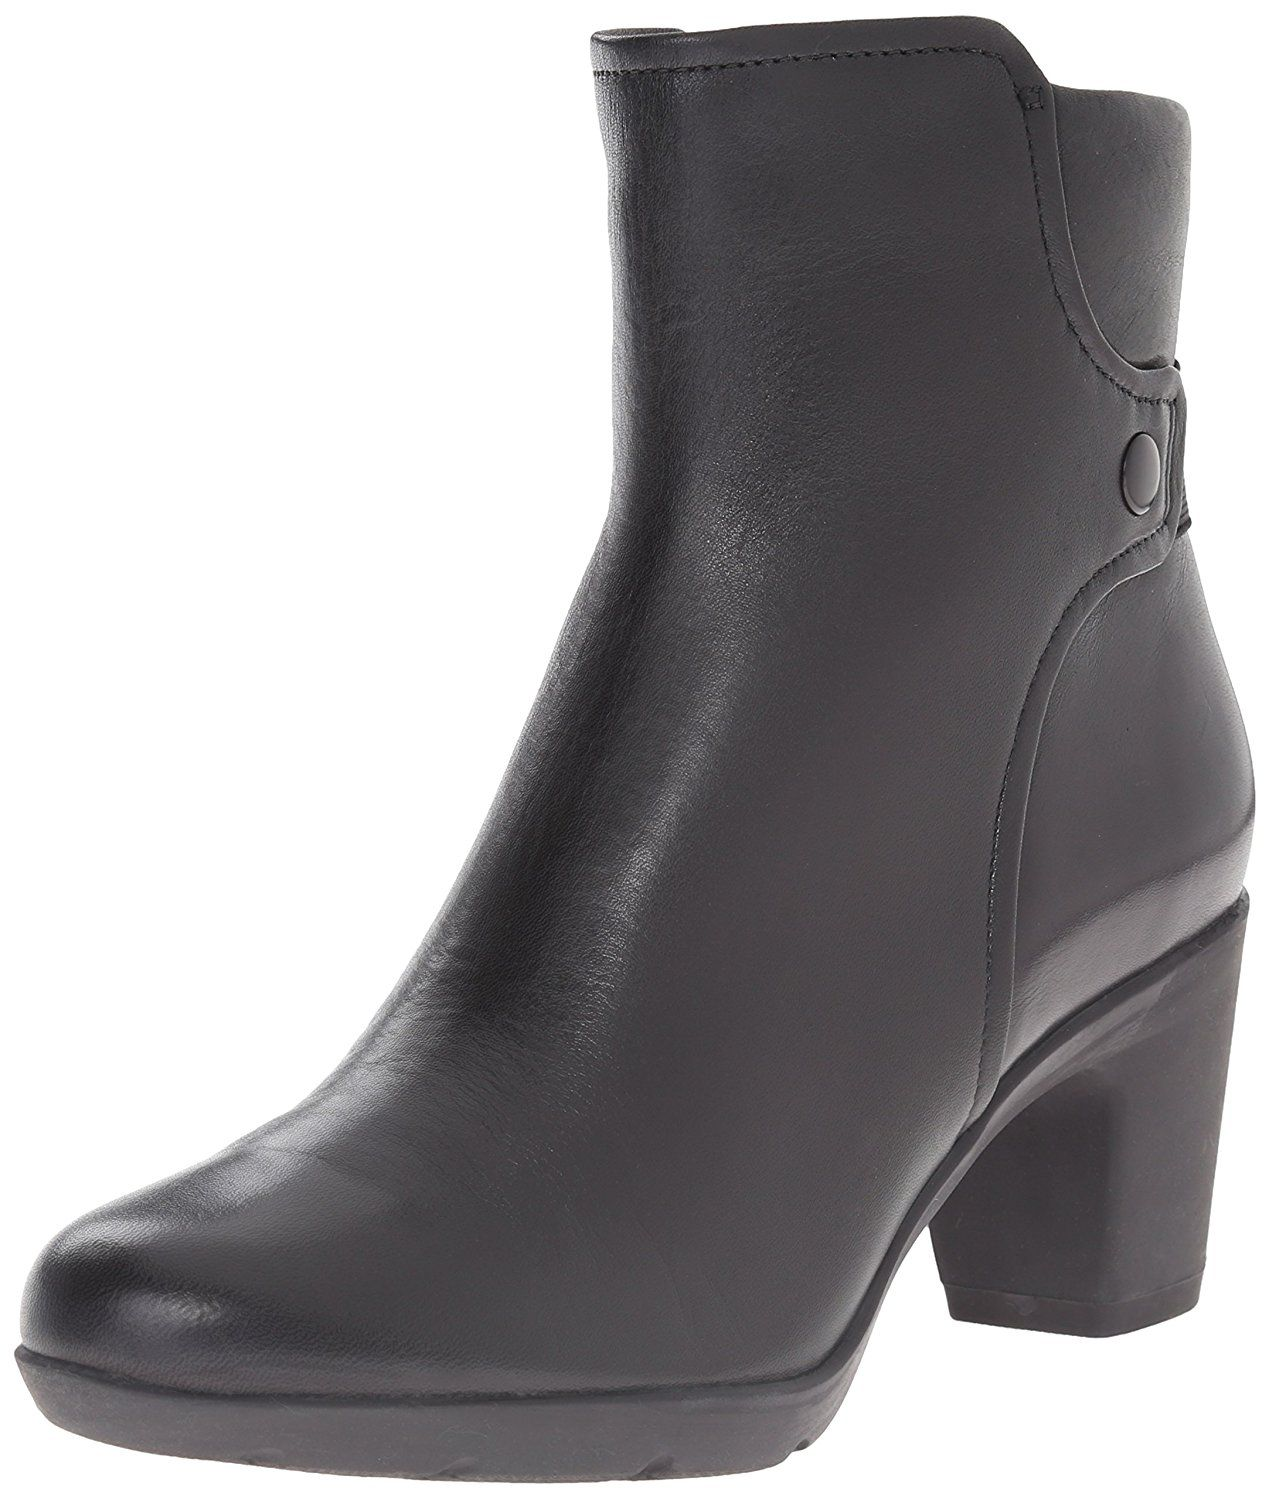 Clarks Women's Lucette Jewel Boot ^^ Additional details at the pin image,  click it